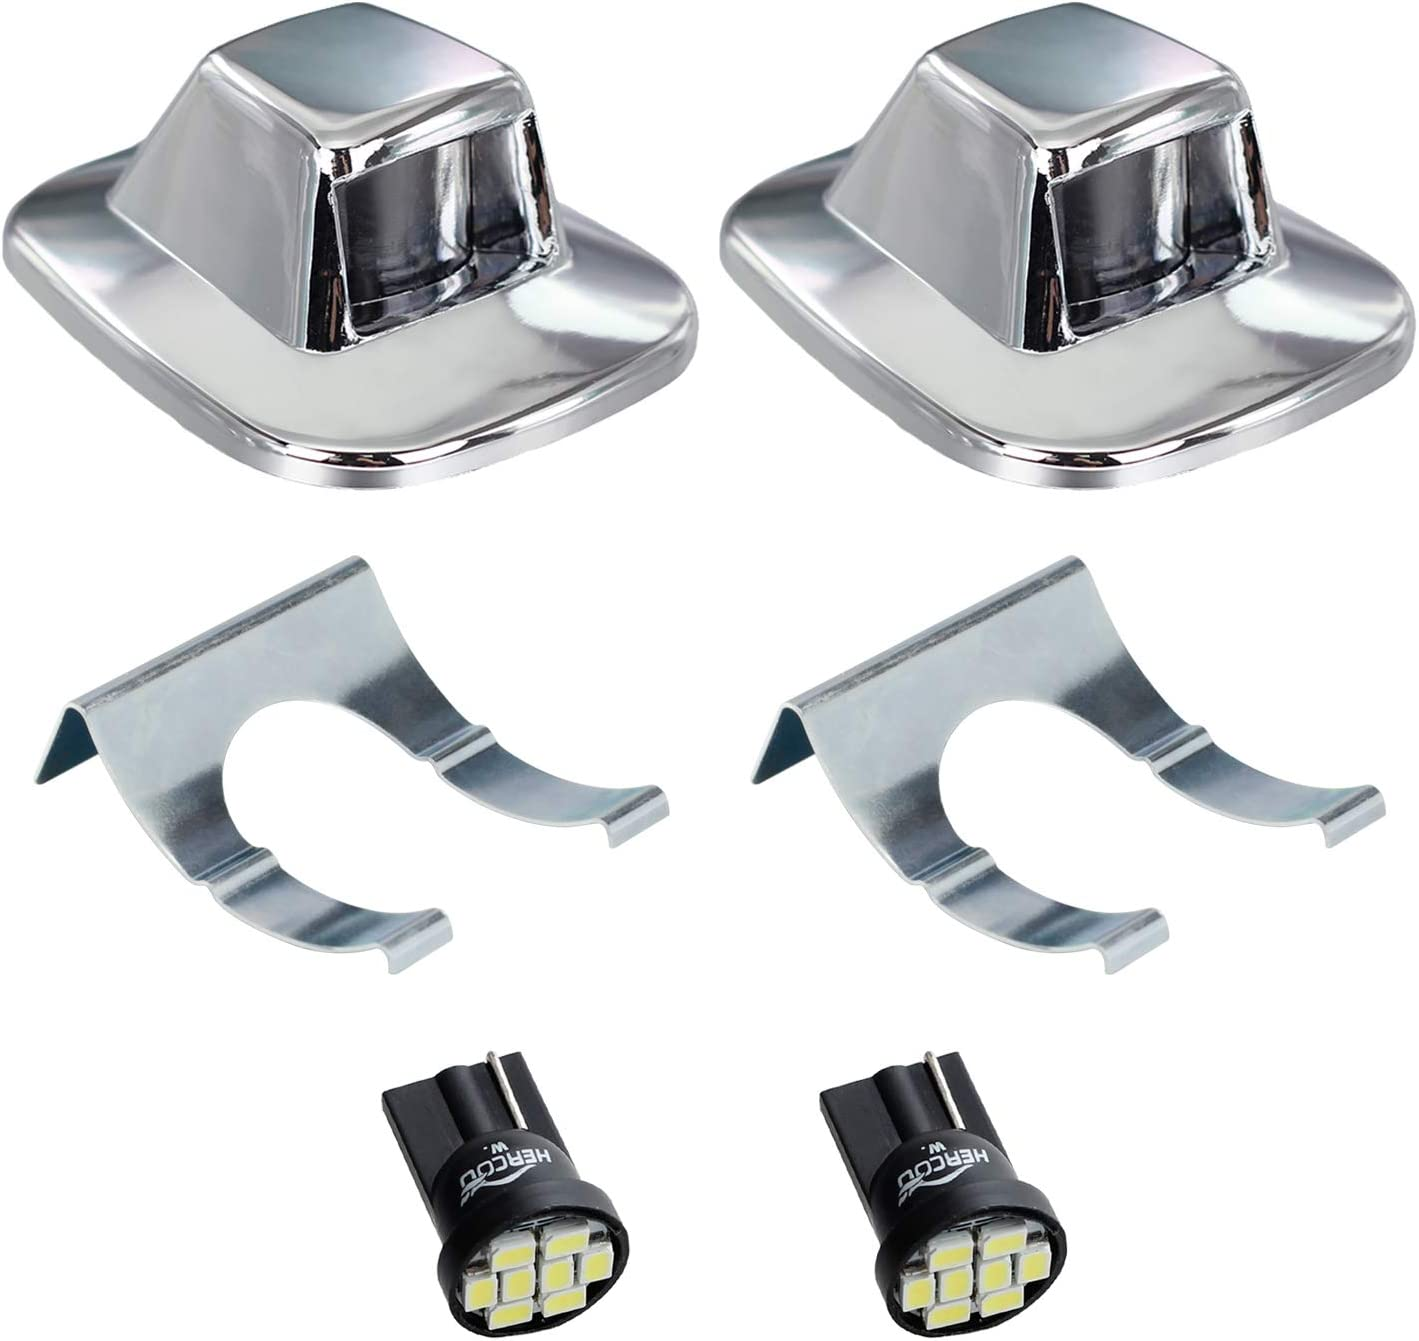 Easy-to-use HERCOO LED License Plate Light Lamp White Chrome Max 73% OFF Bulbs Lens Truc